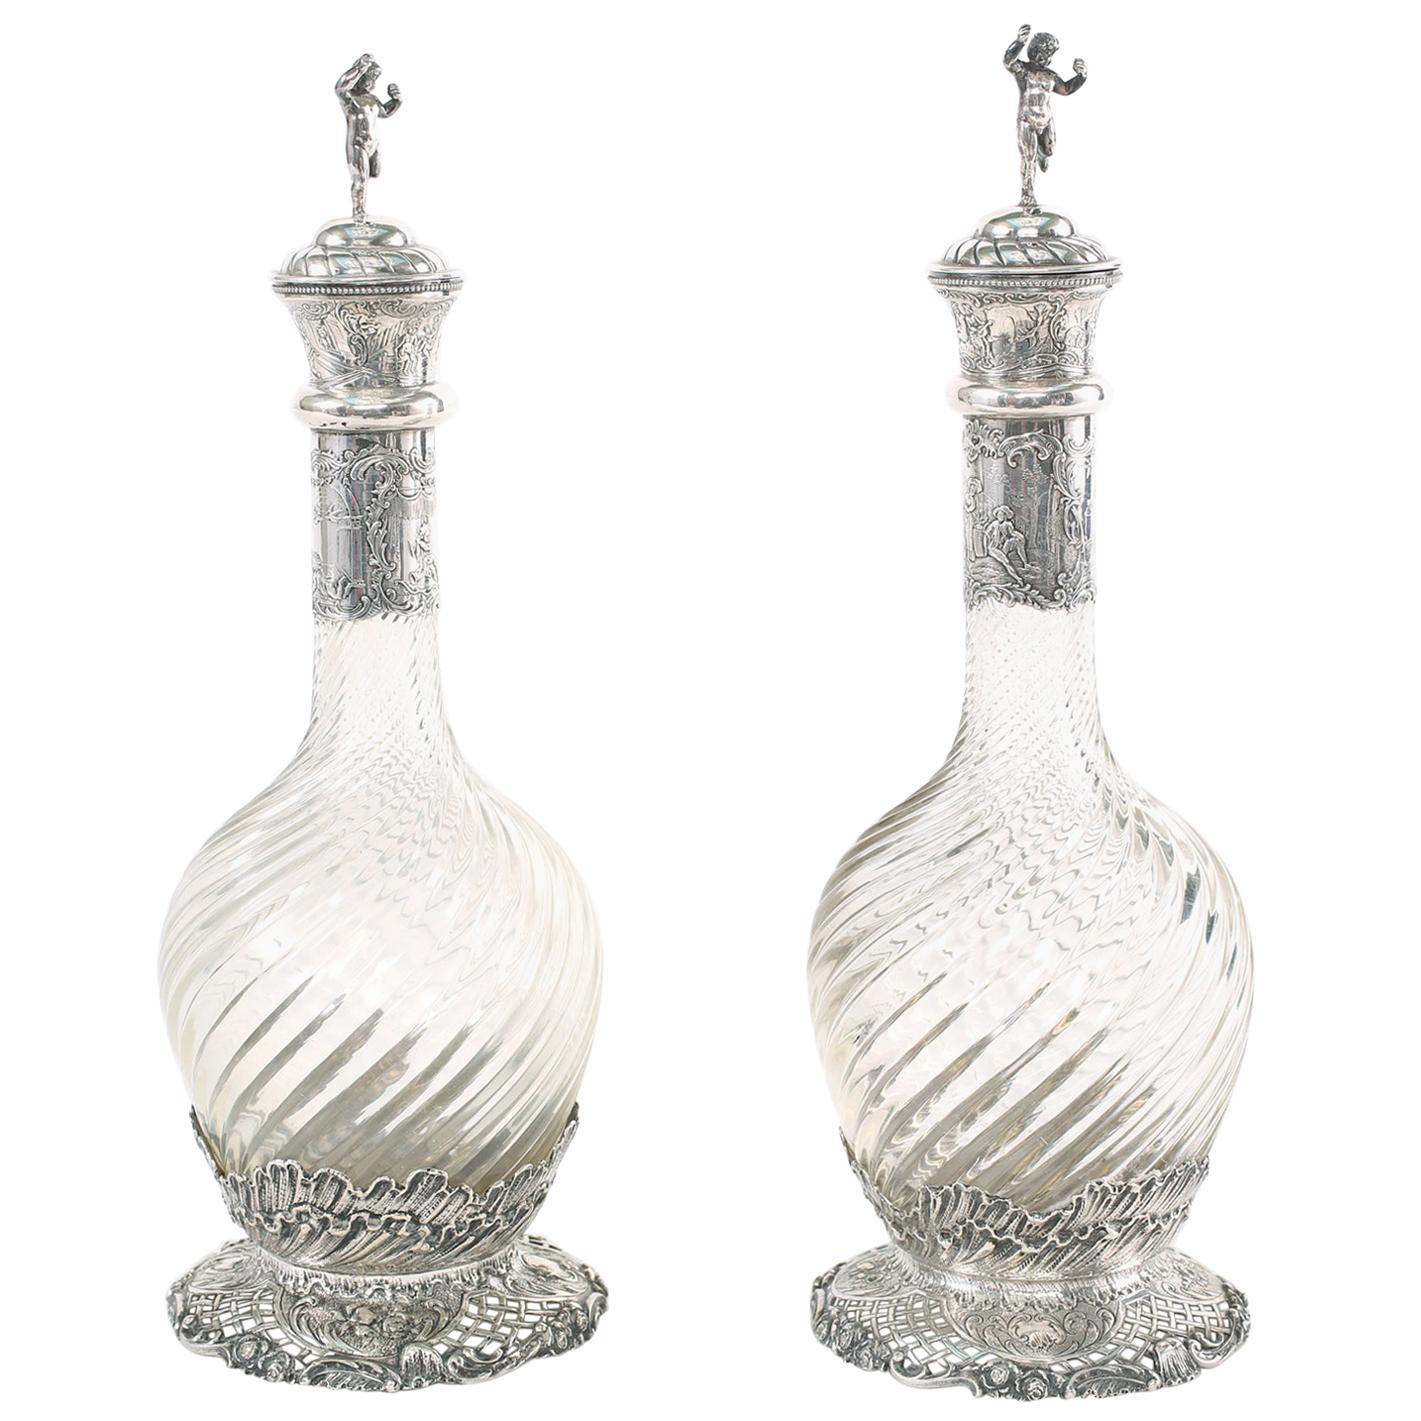 German Silver Mounted / Cut Glass Pair Claret Jugs